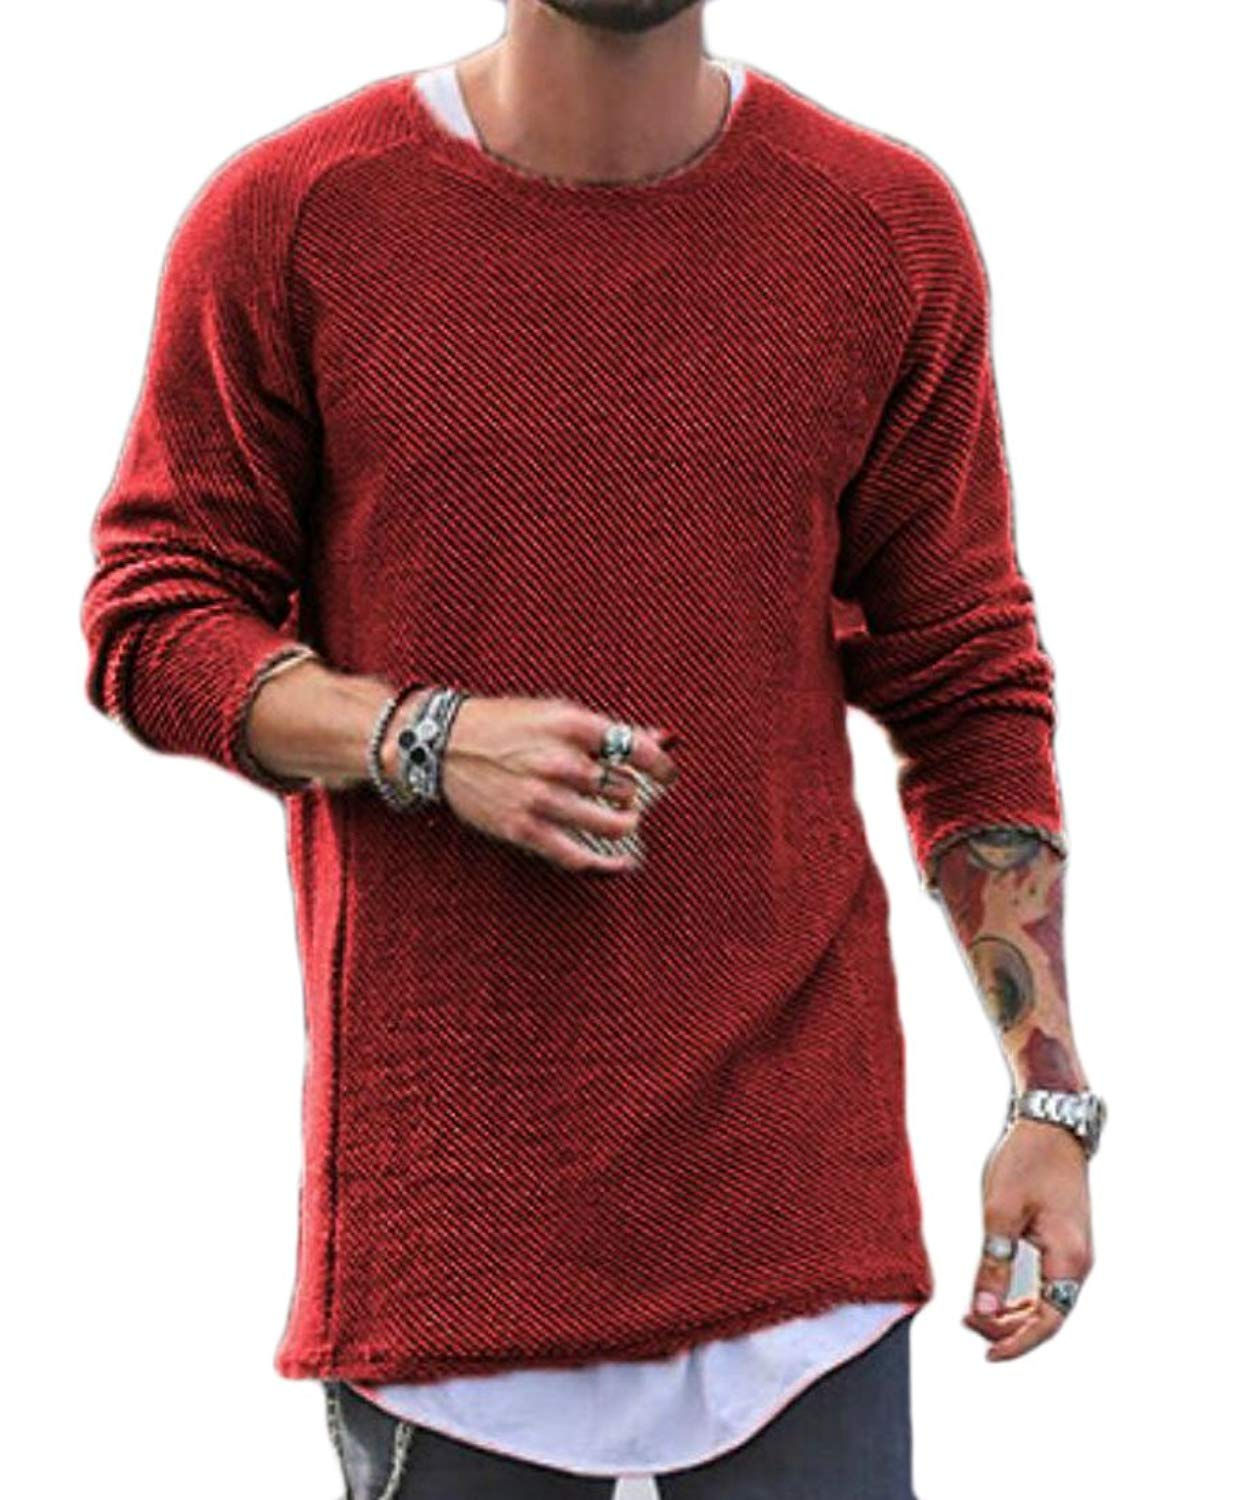 Pandapang Mens Classic Long Sleeve Woven Crewneck Knitted Pullover Jumper Sweaters